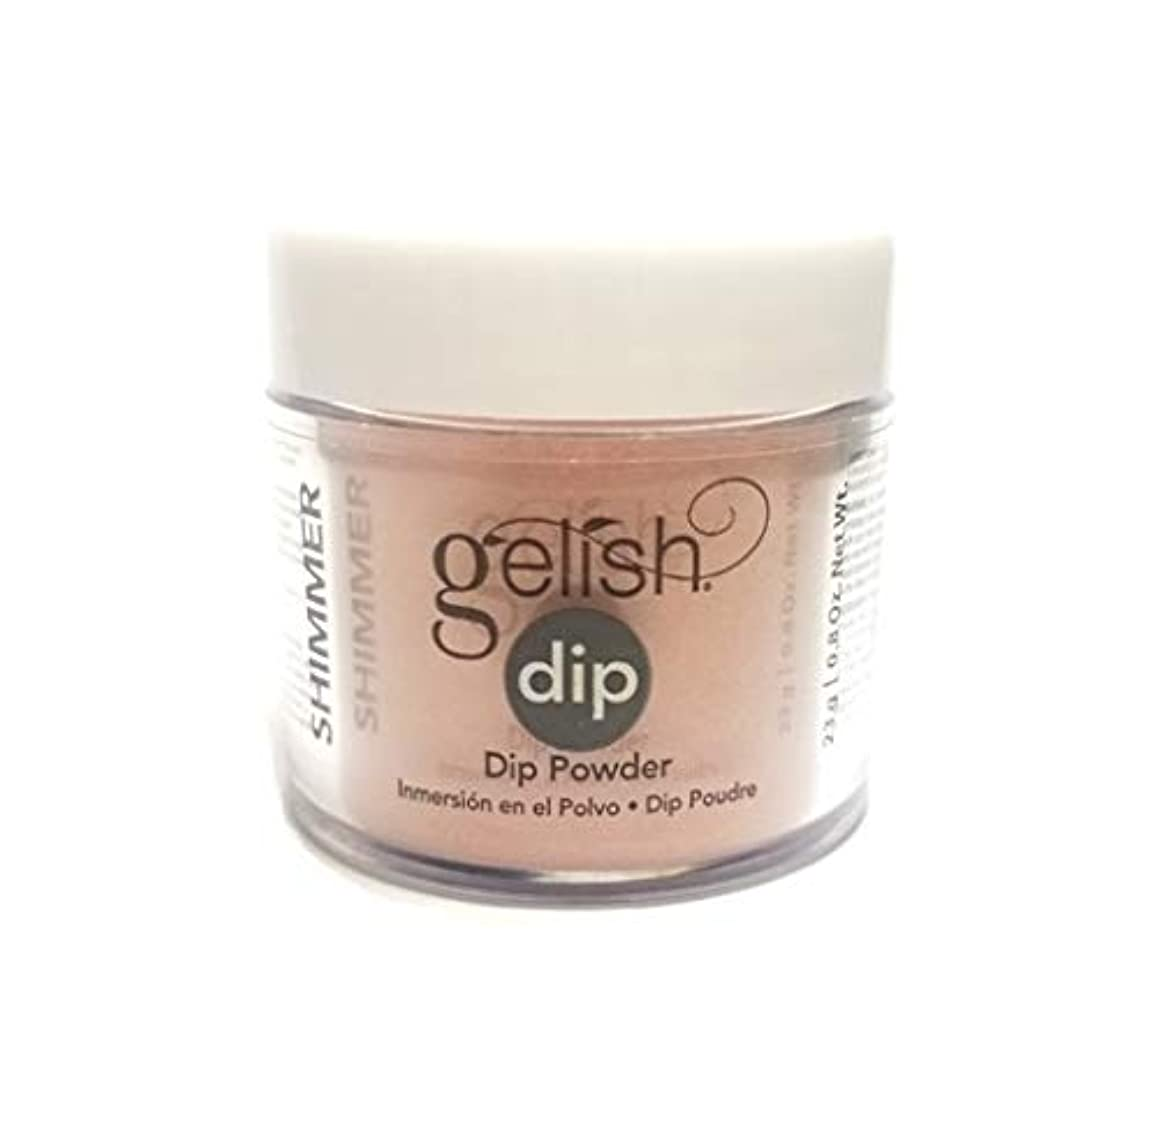 アノイ許可オートメーションHarmony Gelish - Dip Powder - Sunrise And The City - 23g / 0.8oz